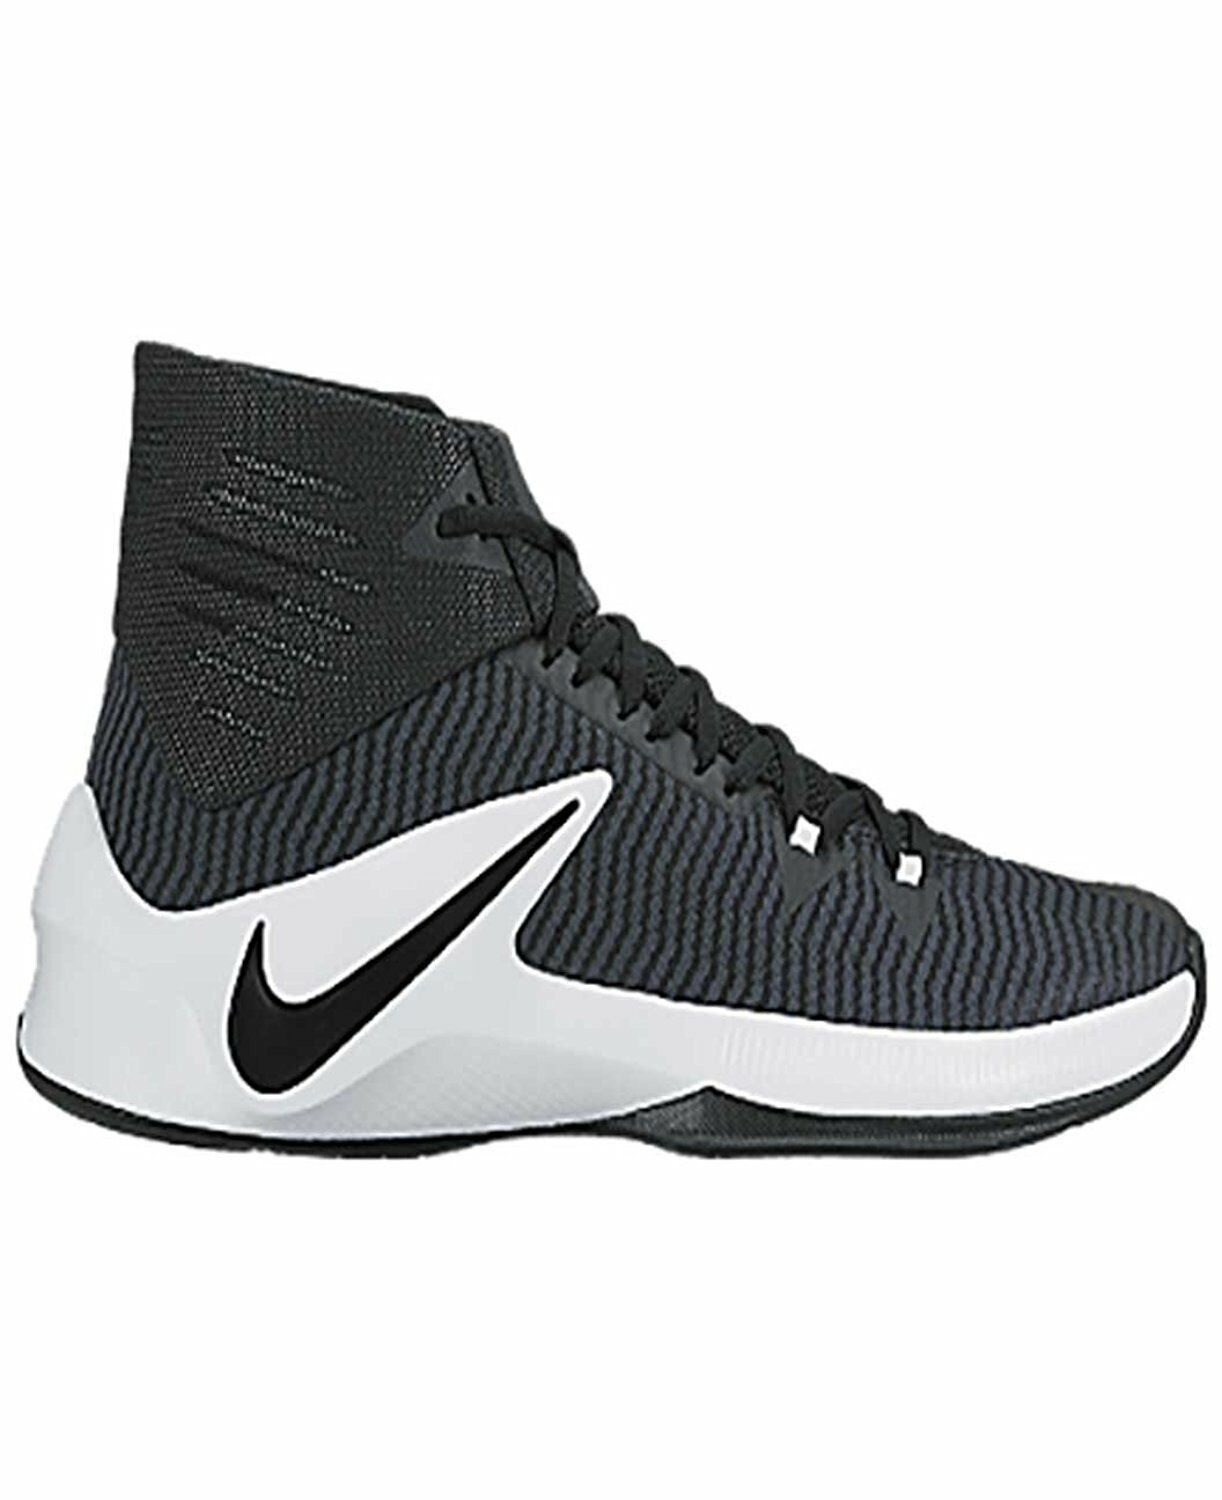 Nike Men's Zoom Clear Out TB Shoes Black/White,Royal/White,Team Red/White,Light Blue/White,Team Orange/White,Purple/White,Scarlet/White,White/Black